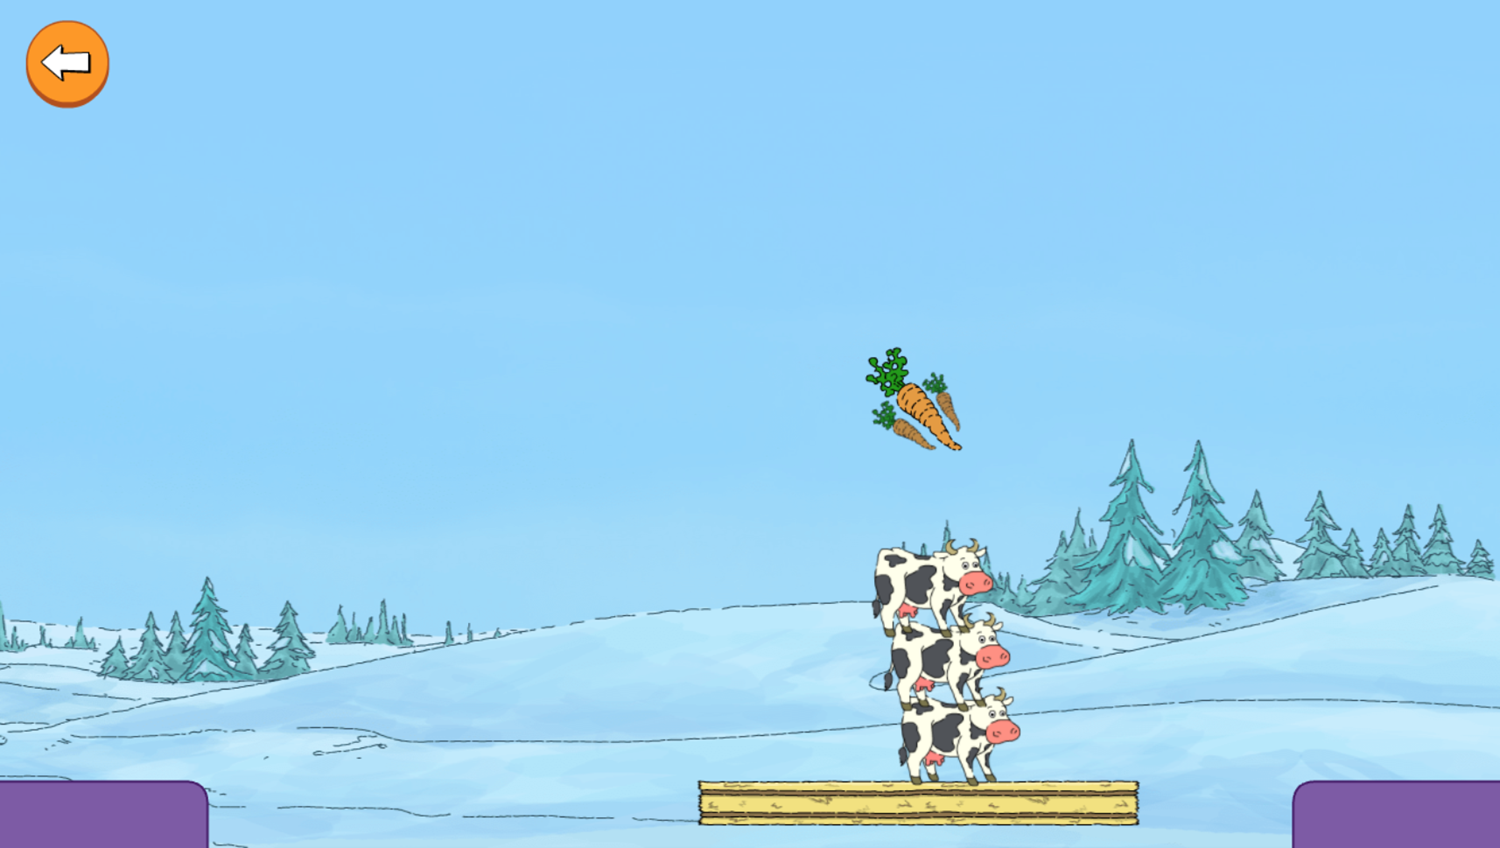 Arthur Tower of Cows Game Move Gameplay Screenshot.